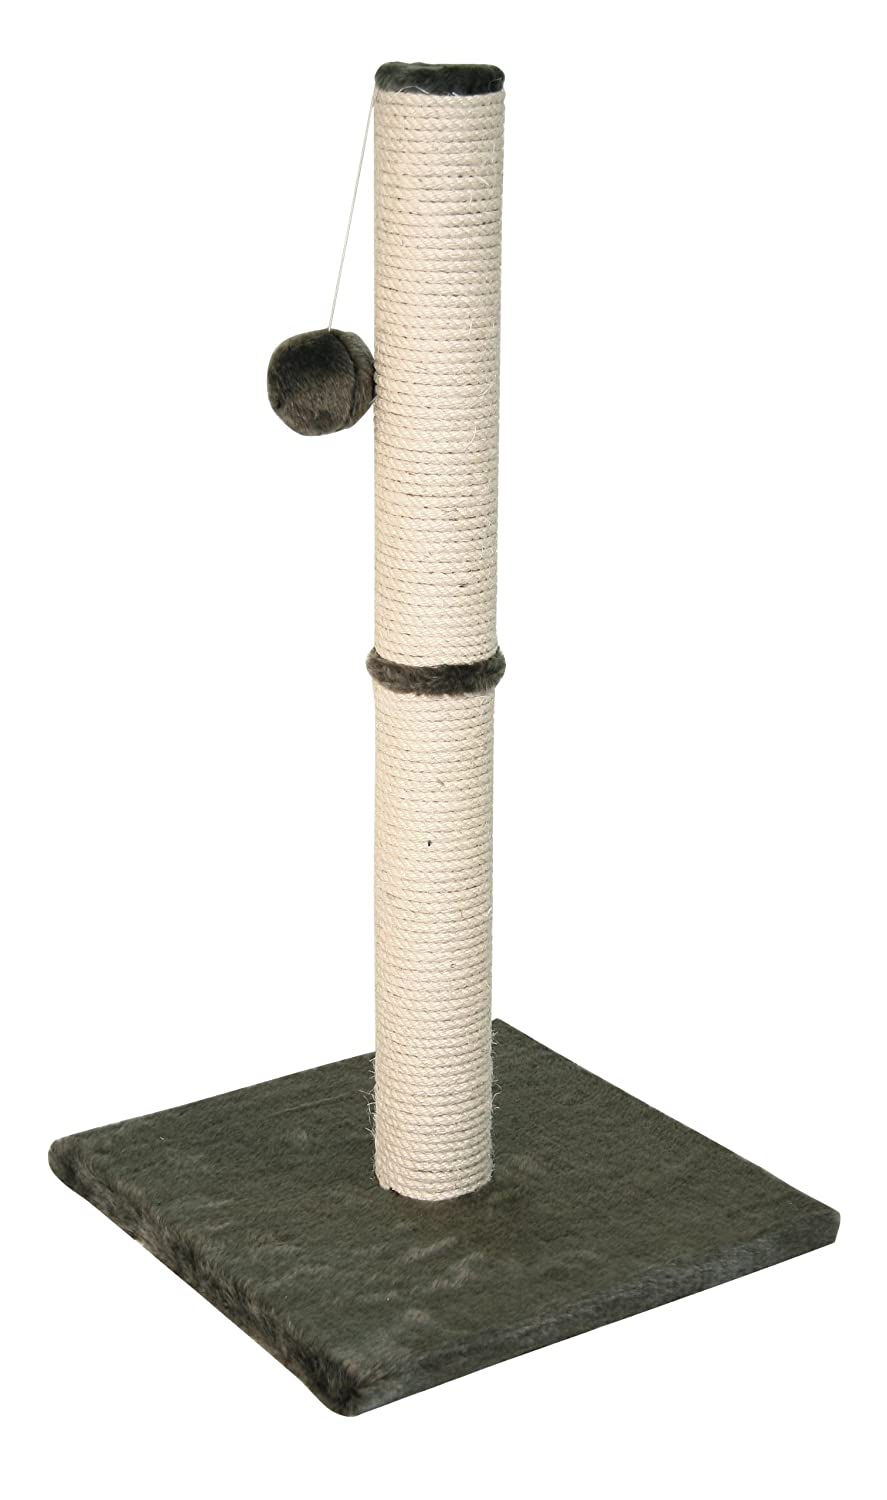 Tall Scratching Post Pole 39 x 39 x 78 cm